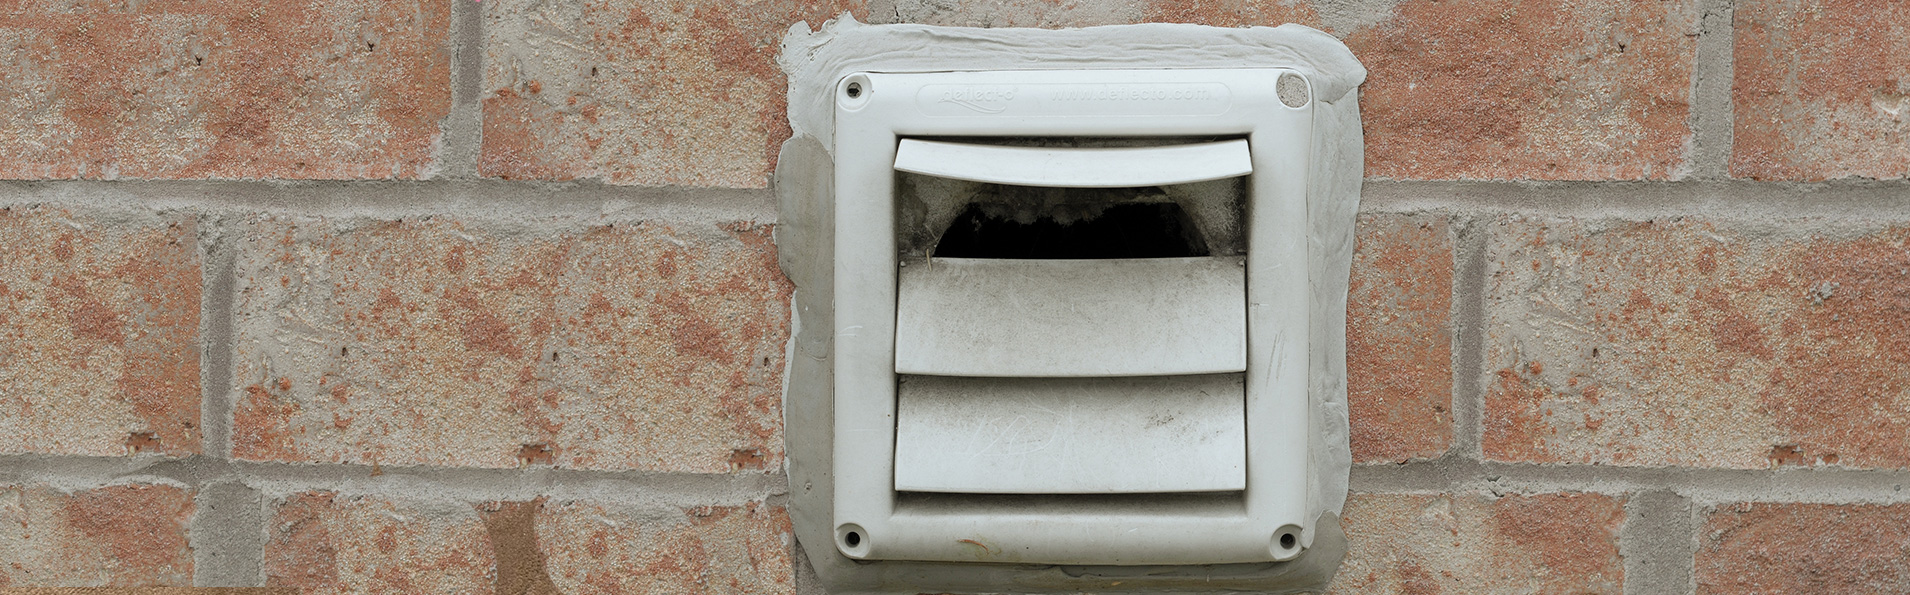 Dryer Vent Cleaning Las Cruces